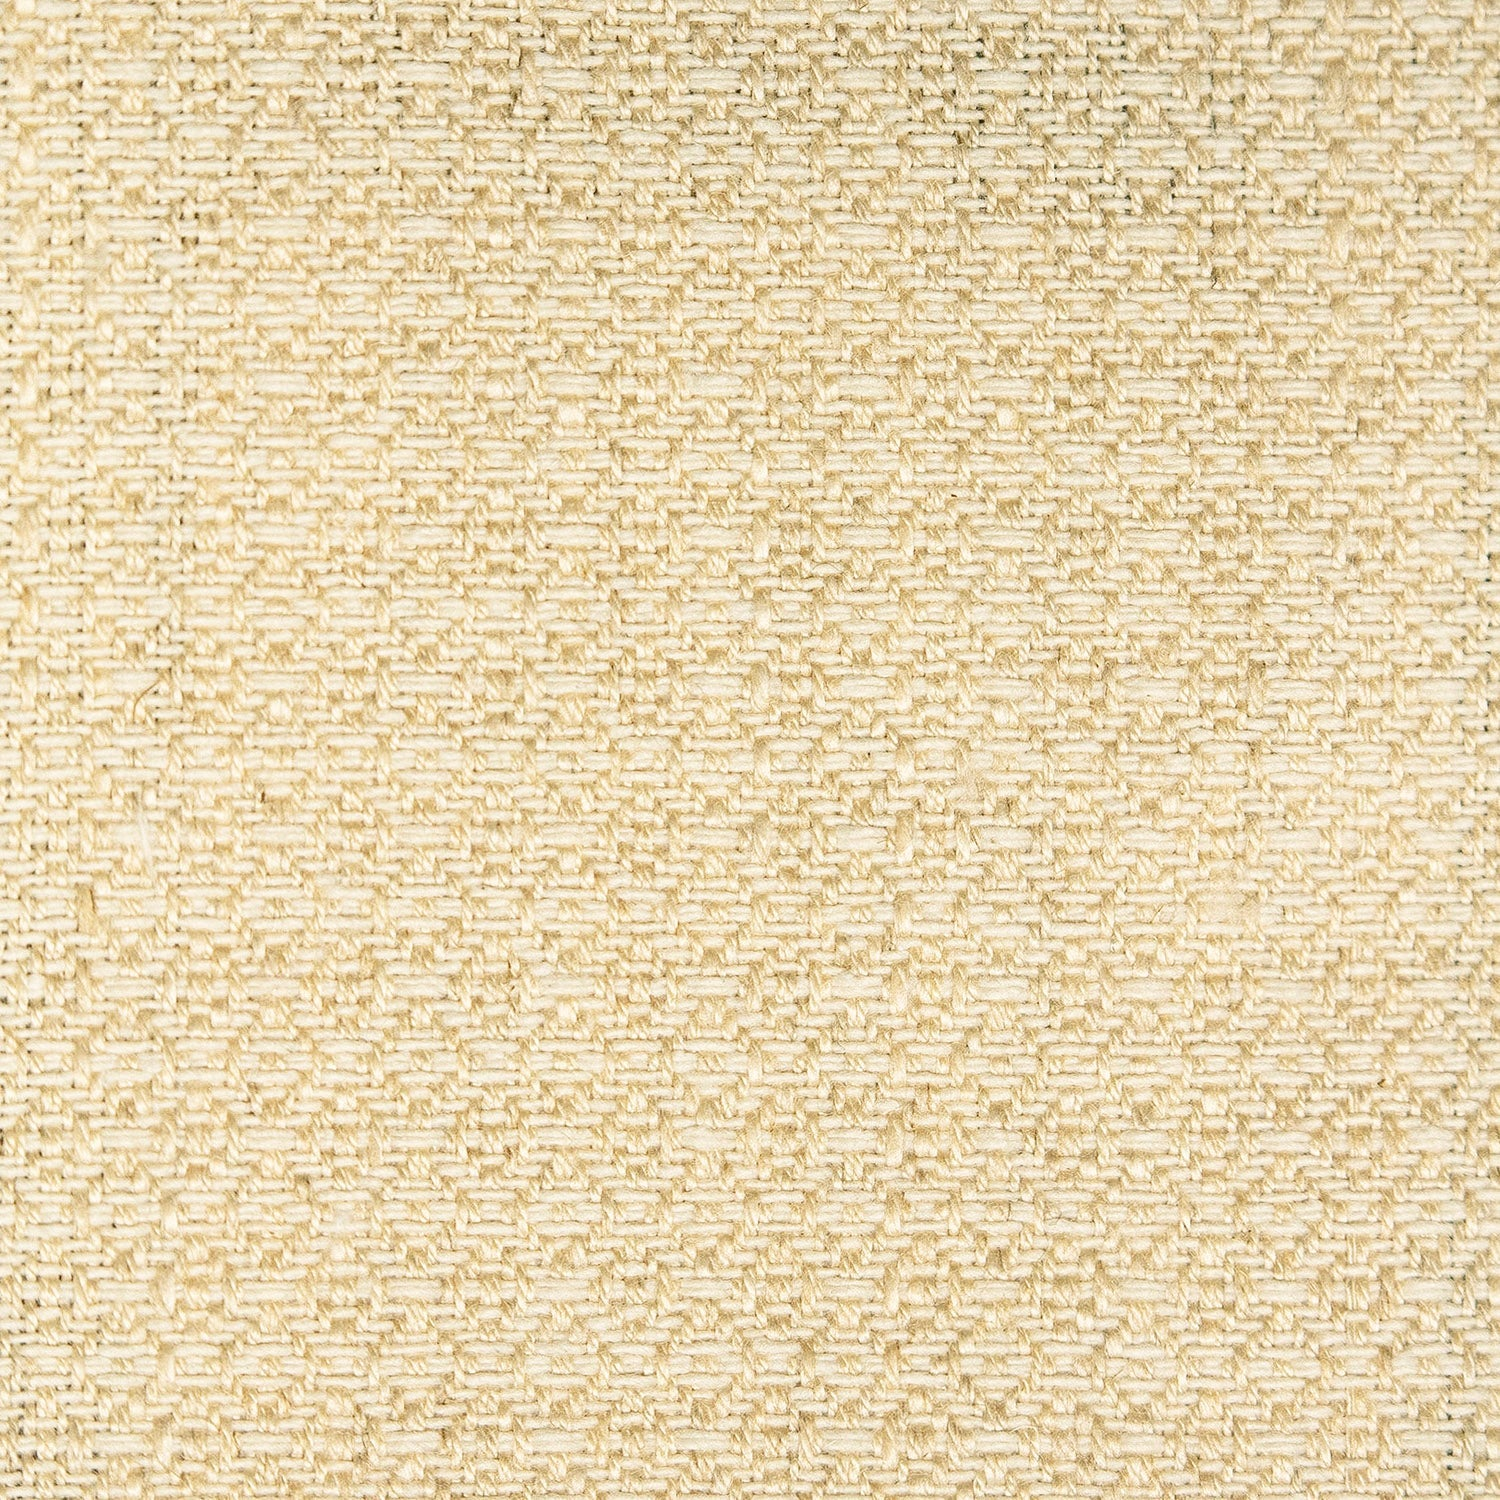 Fabric sample of a light neutral weave fabric with a small diamond design and stain resistant finish for curtains and upholstery